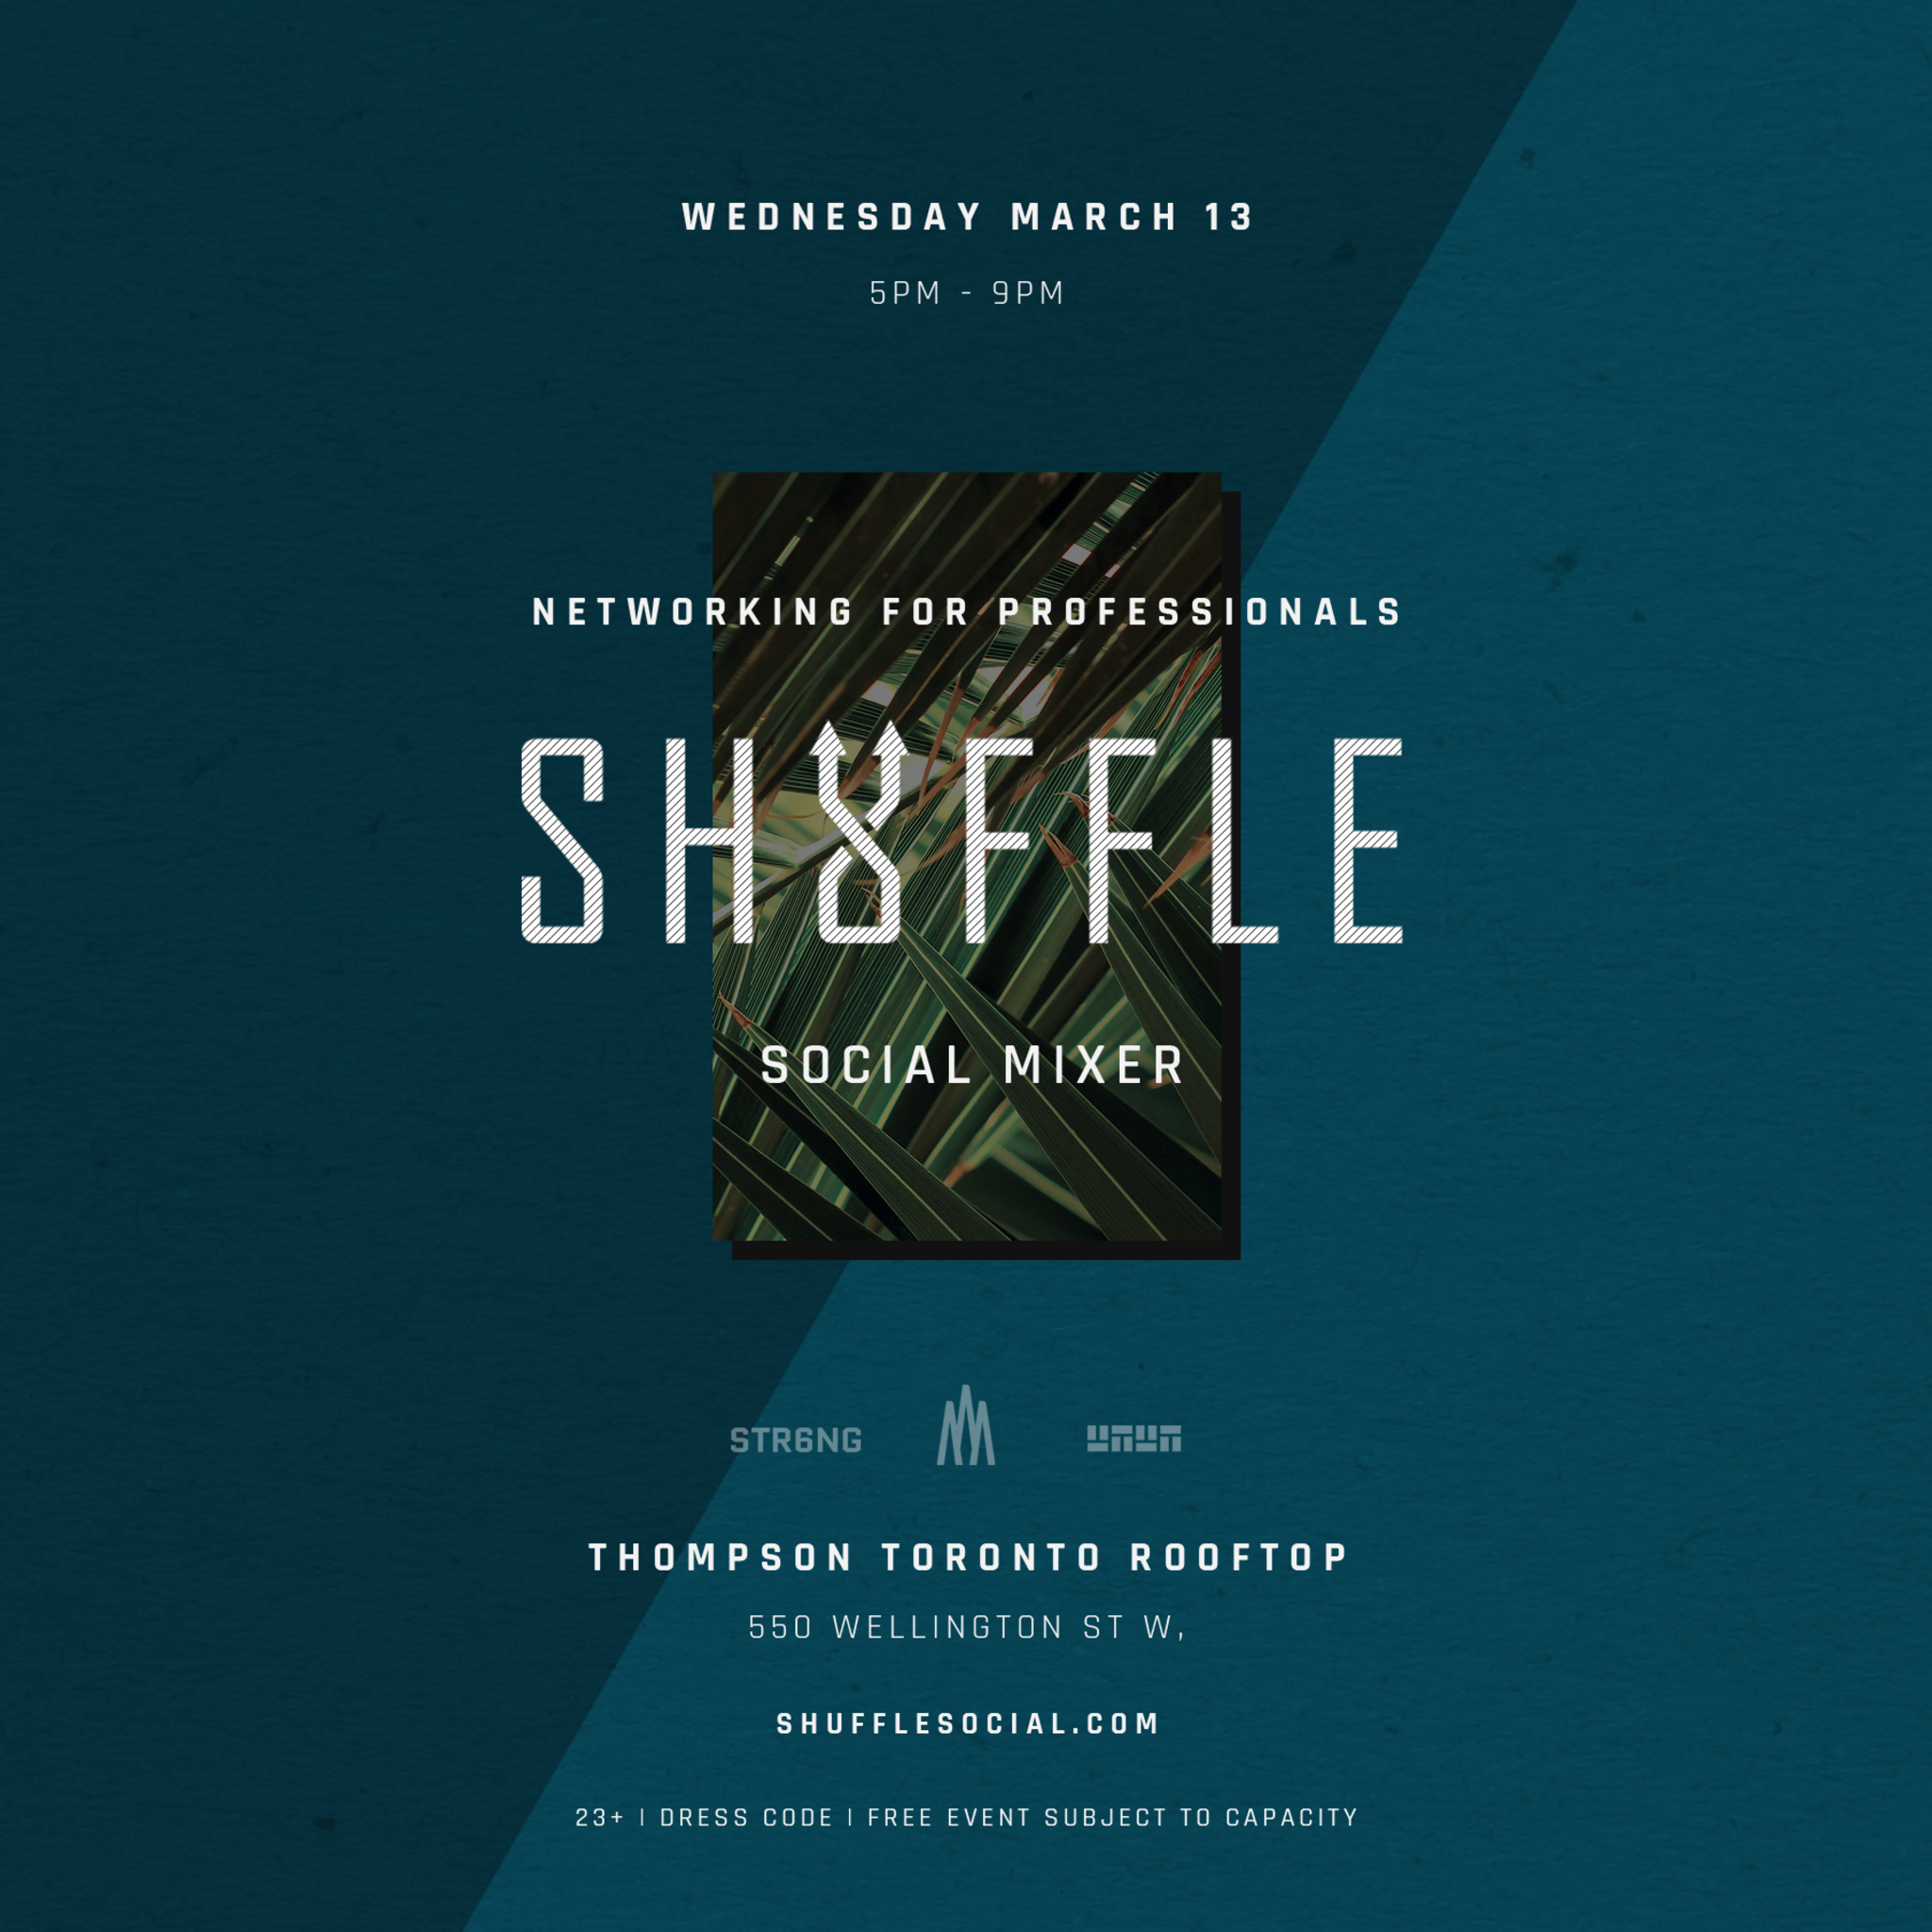 Shuffle Social Mixer - Networking for Professionals